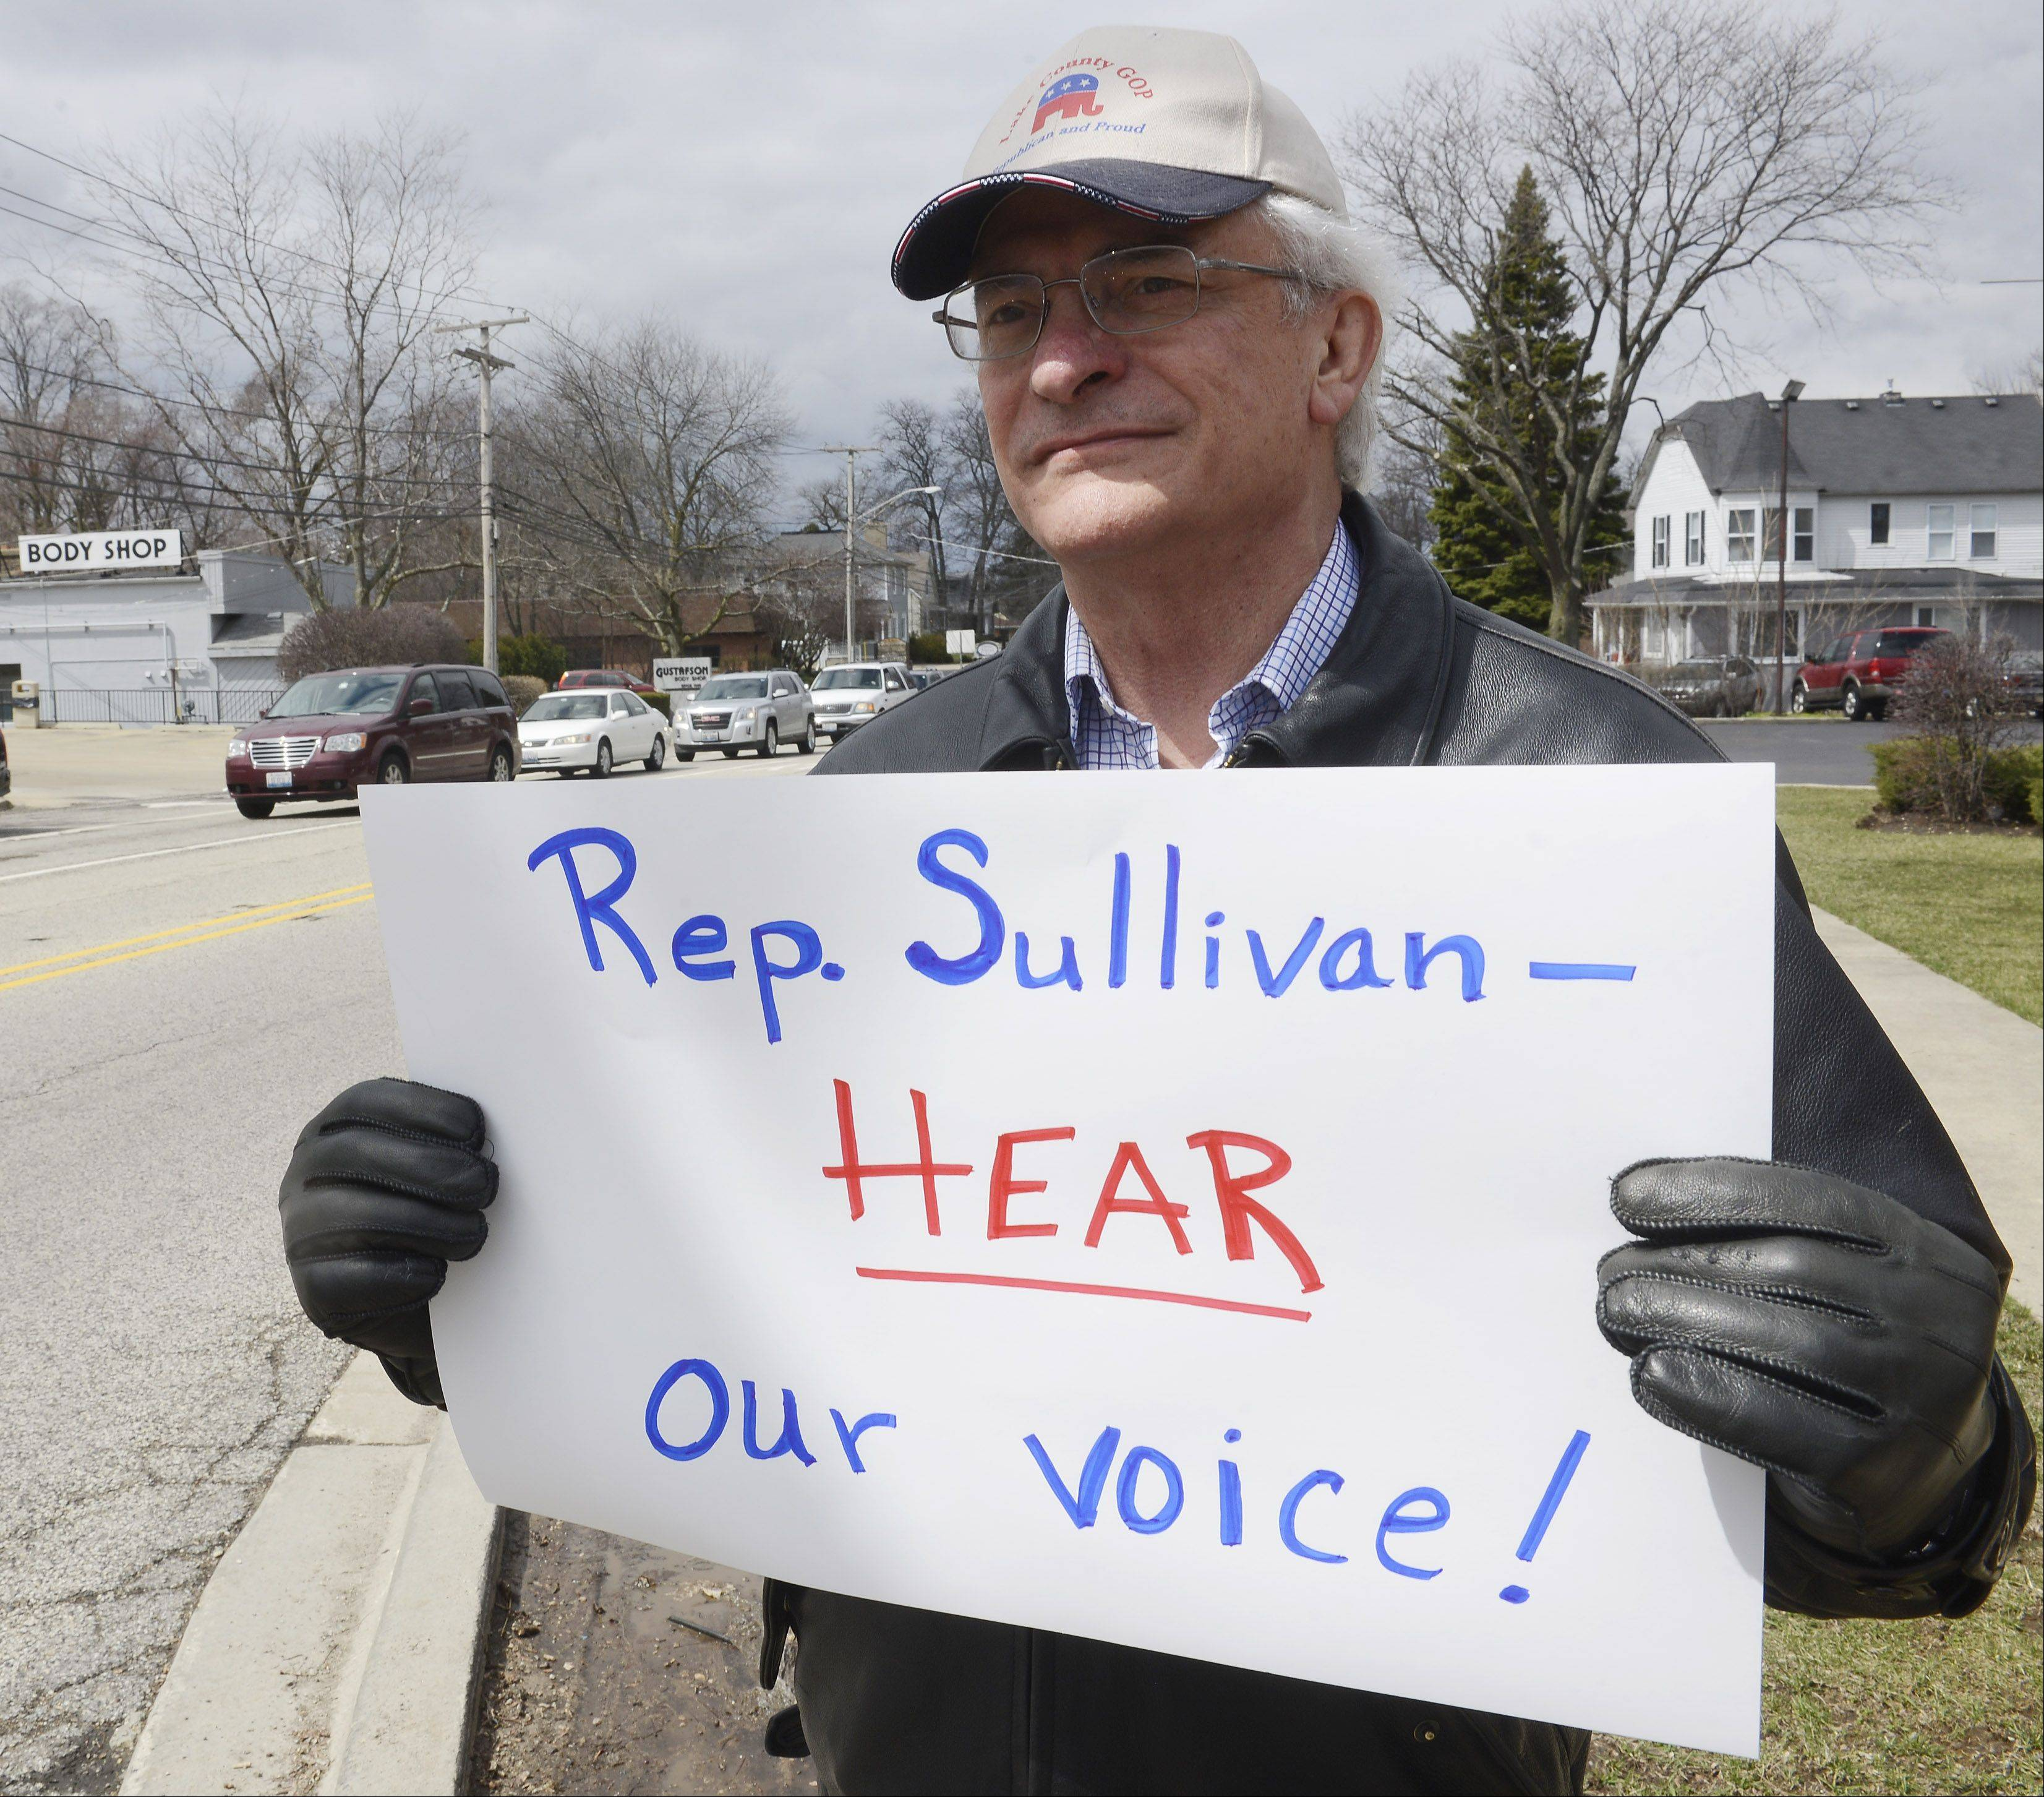 'Traditional marriage' supporters protest at Sullivan's office